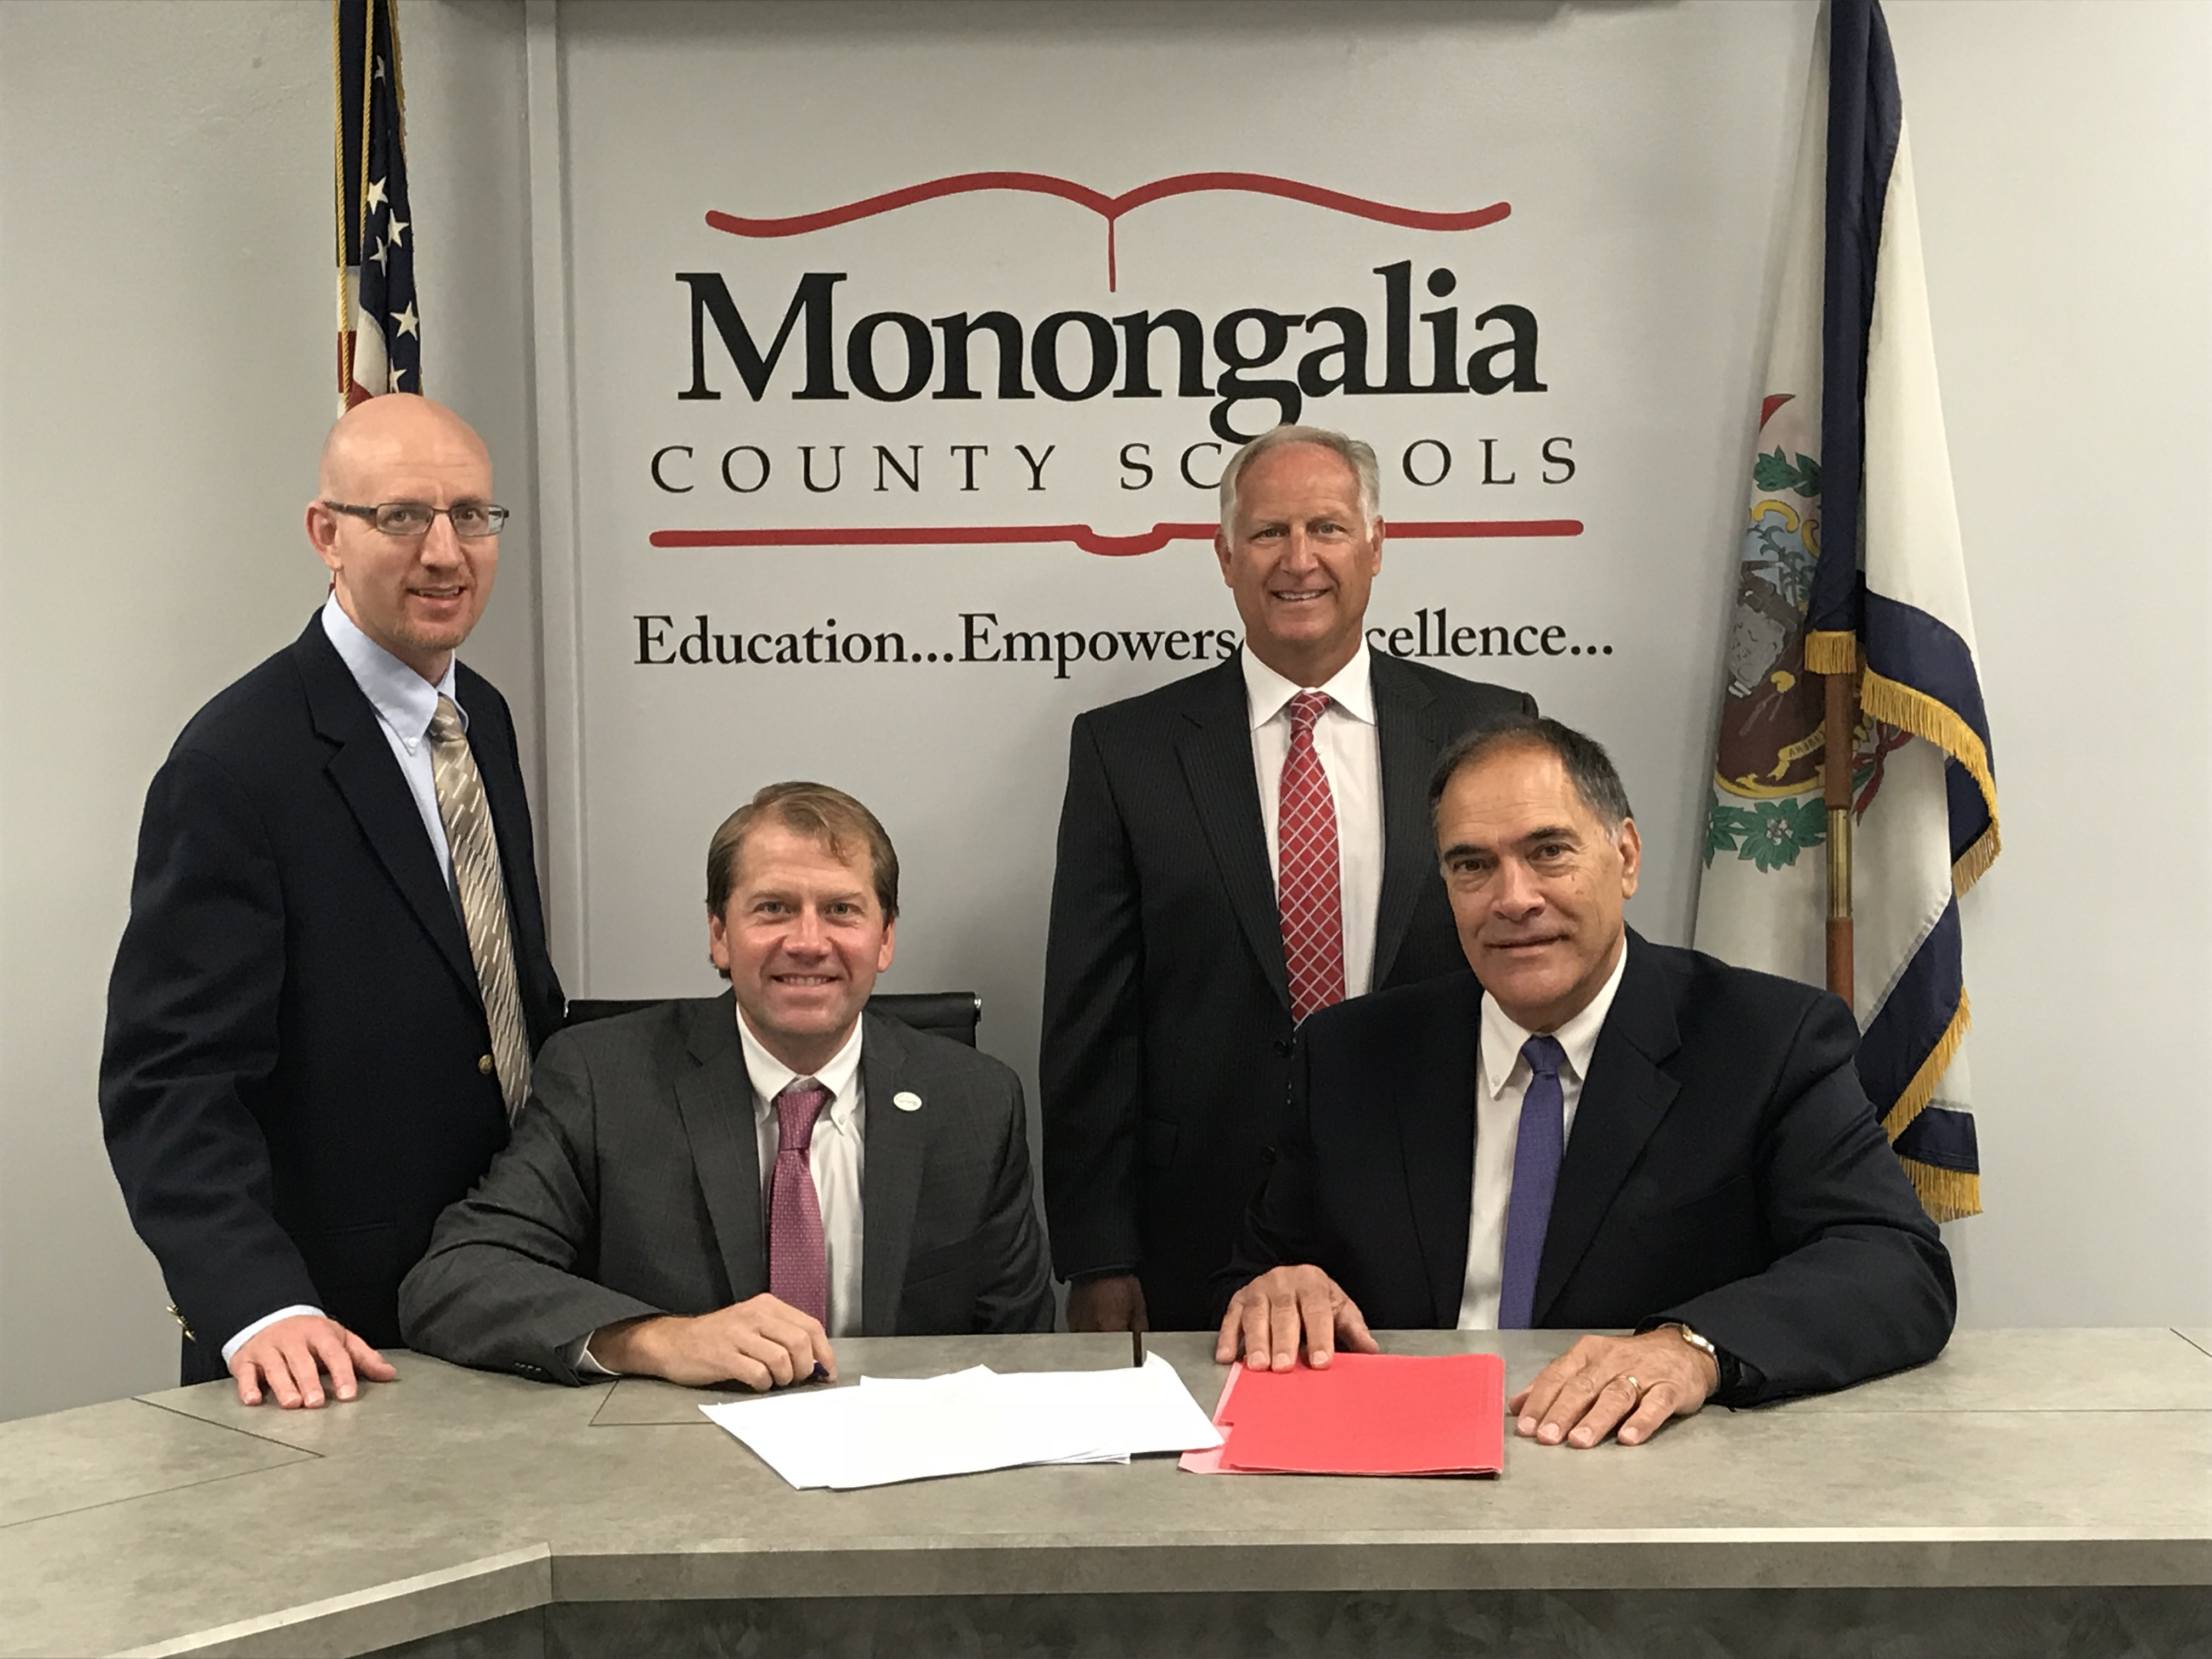 Pictured from left to right are from Clear Mountain Bank: Clint McCabe, COO; David Thomas, President & CEO; Mark Randalls, VP Commercial Lending; and from Monongalia County Schools: Dr. Frank Devono, Superintendent.